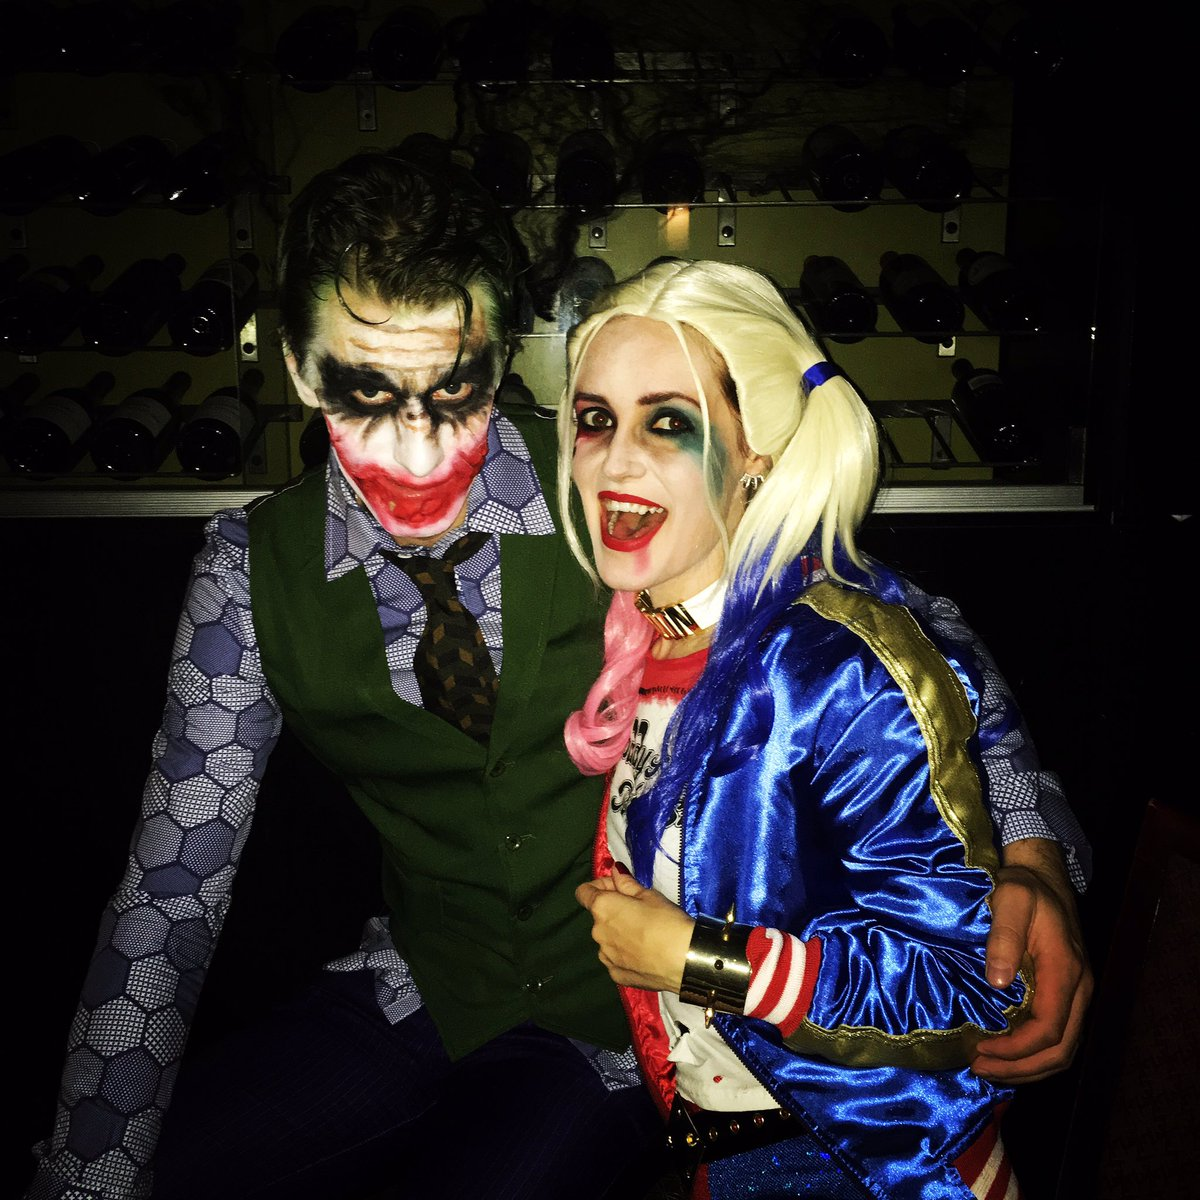 Kyle Turris On Twitter Thanks To Onscenefx For Making Us Look Like This Had Lots Of Fun With Harley Last Night